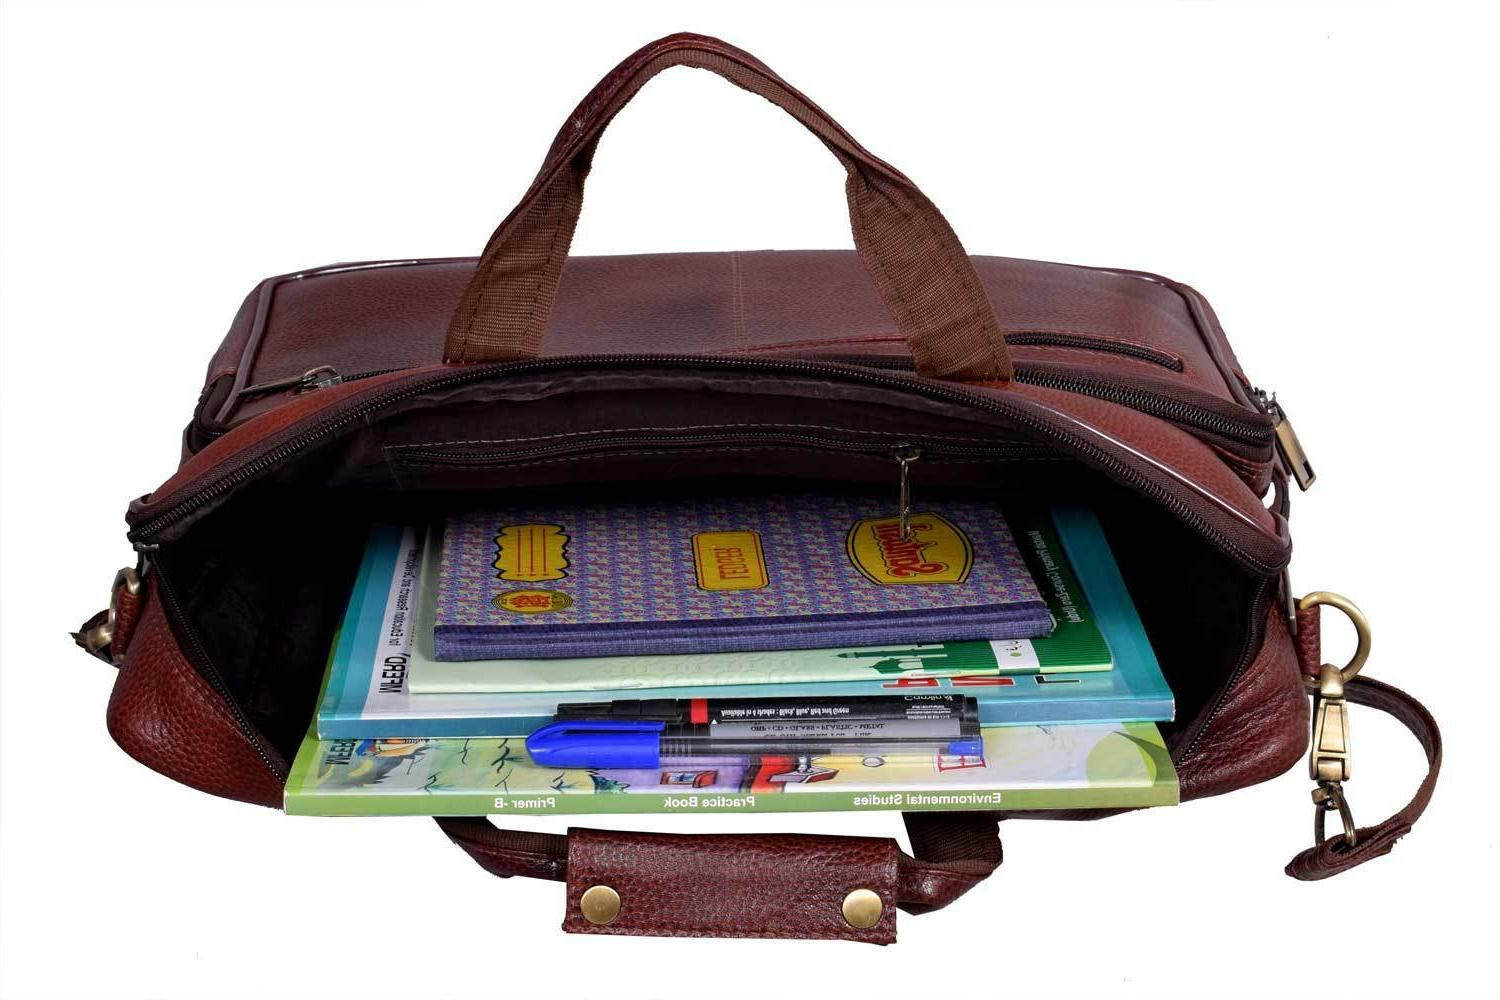 New Laptop Shoulder Body Leather Bag 6 Day Delivery